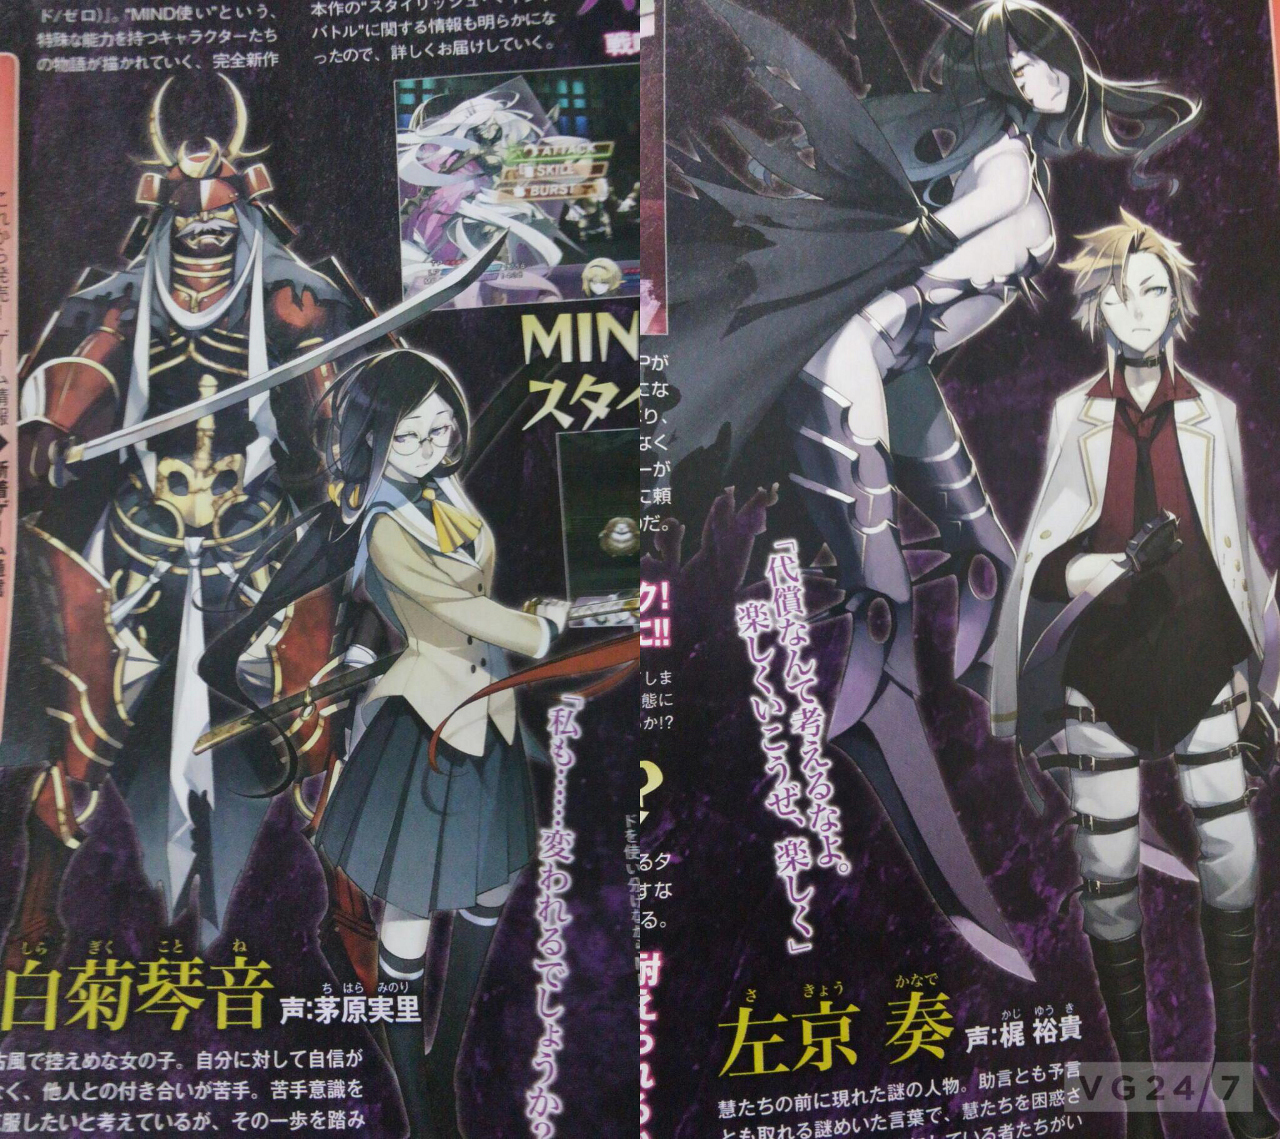 Mind Zero Famitsu scans show off new characters - VG247